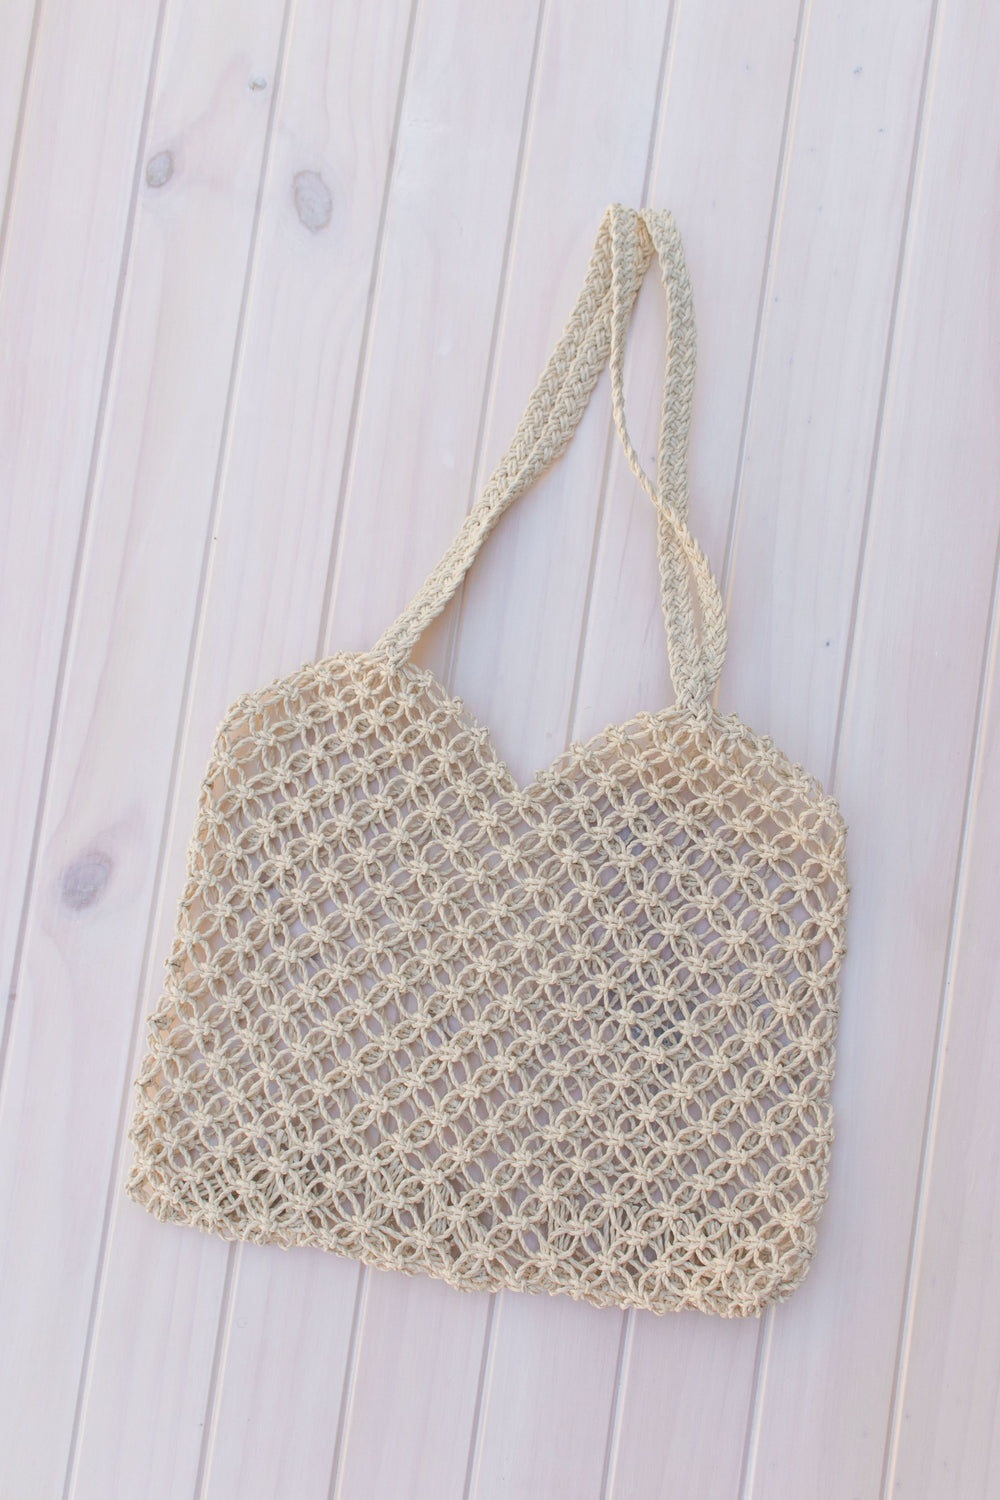 Raw Woven Beach Tote Bag